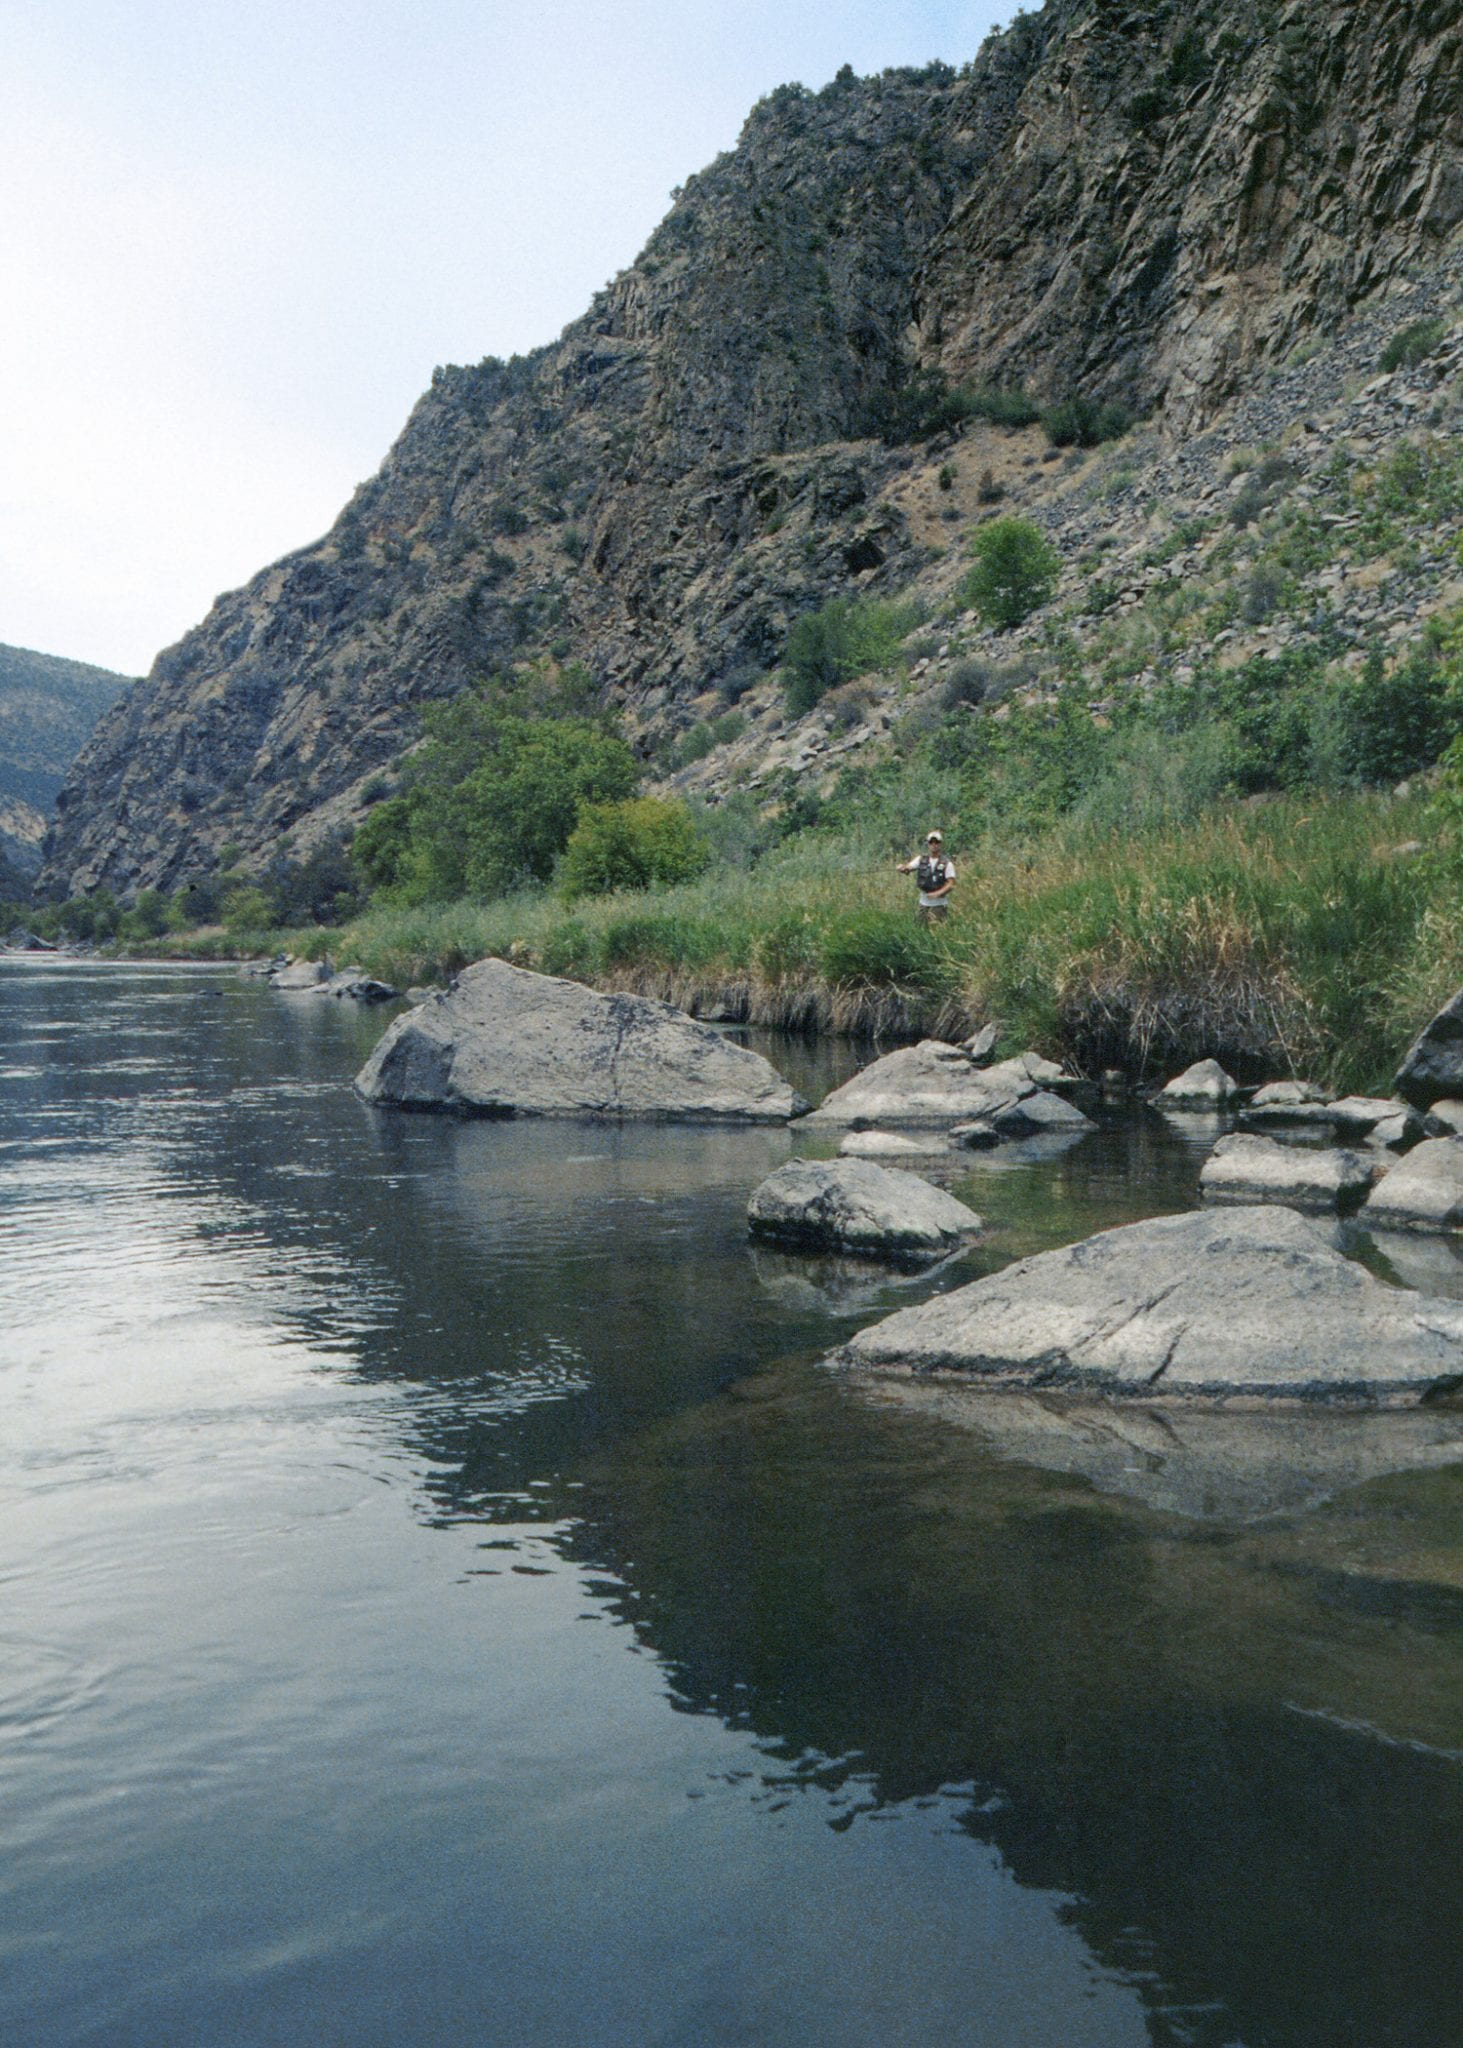 Trout Fishing Gunnison River in Gunnison Gorge NCA Colorado